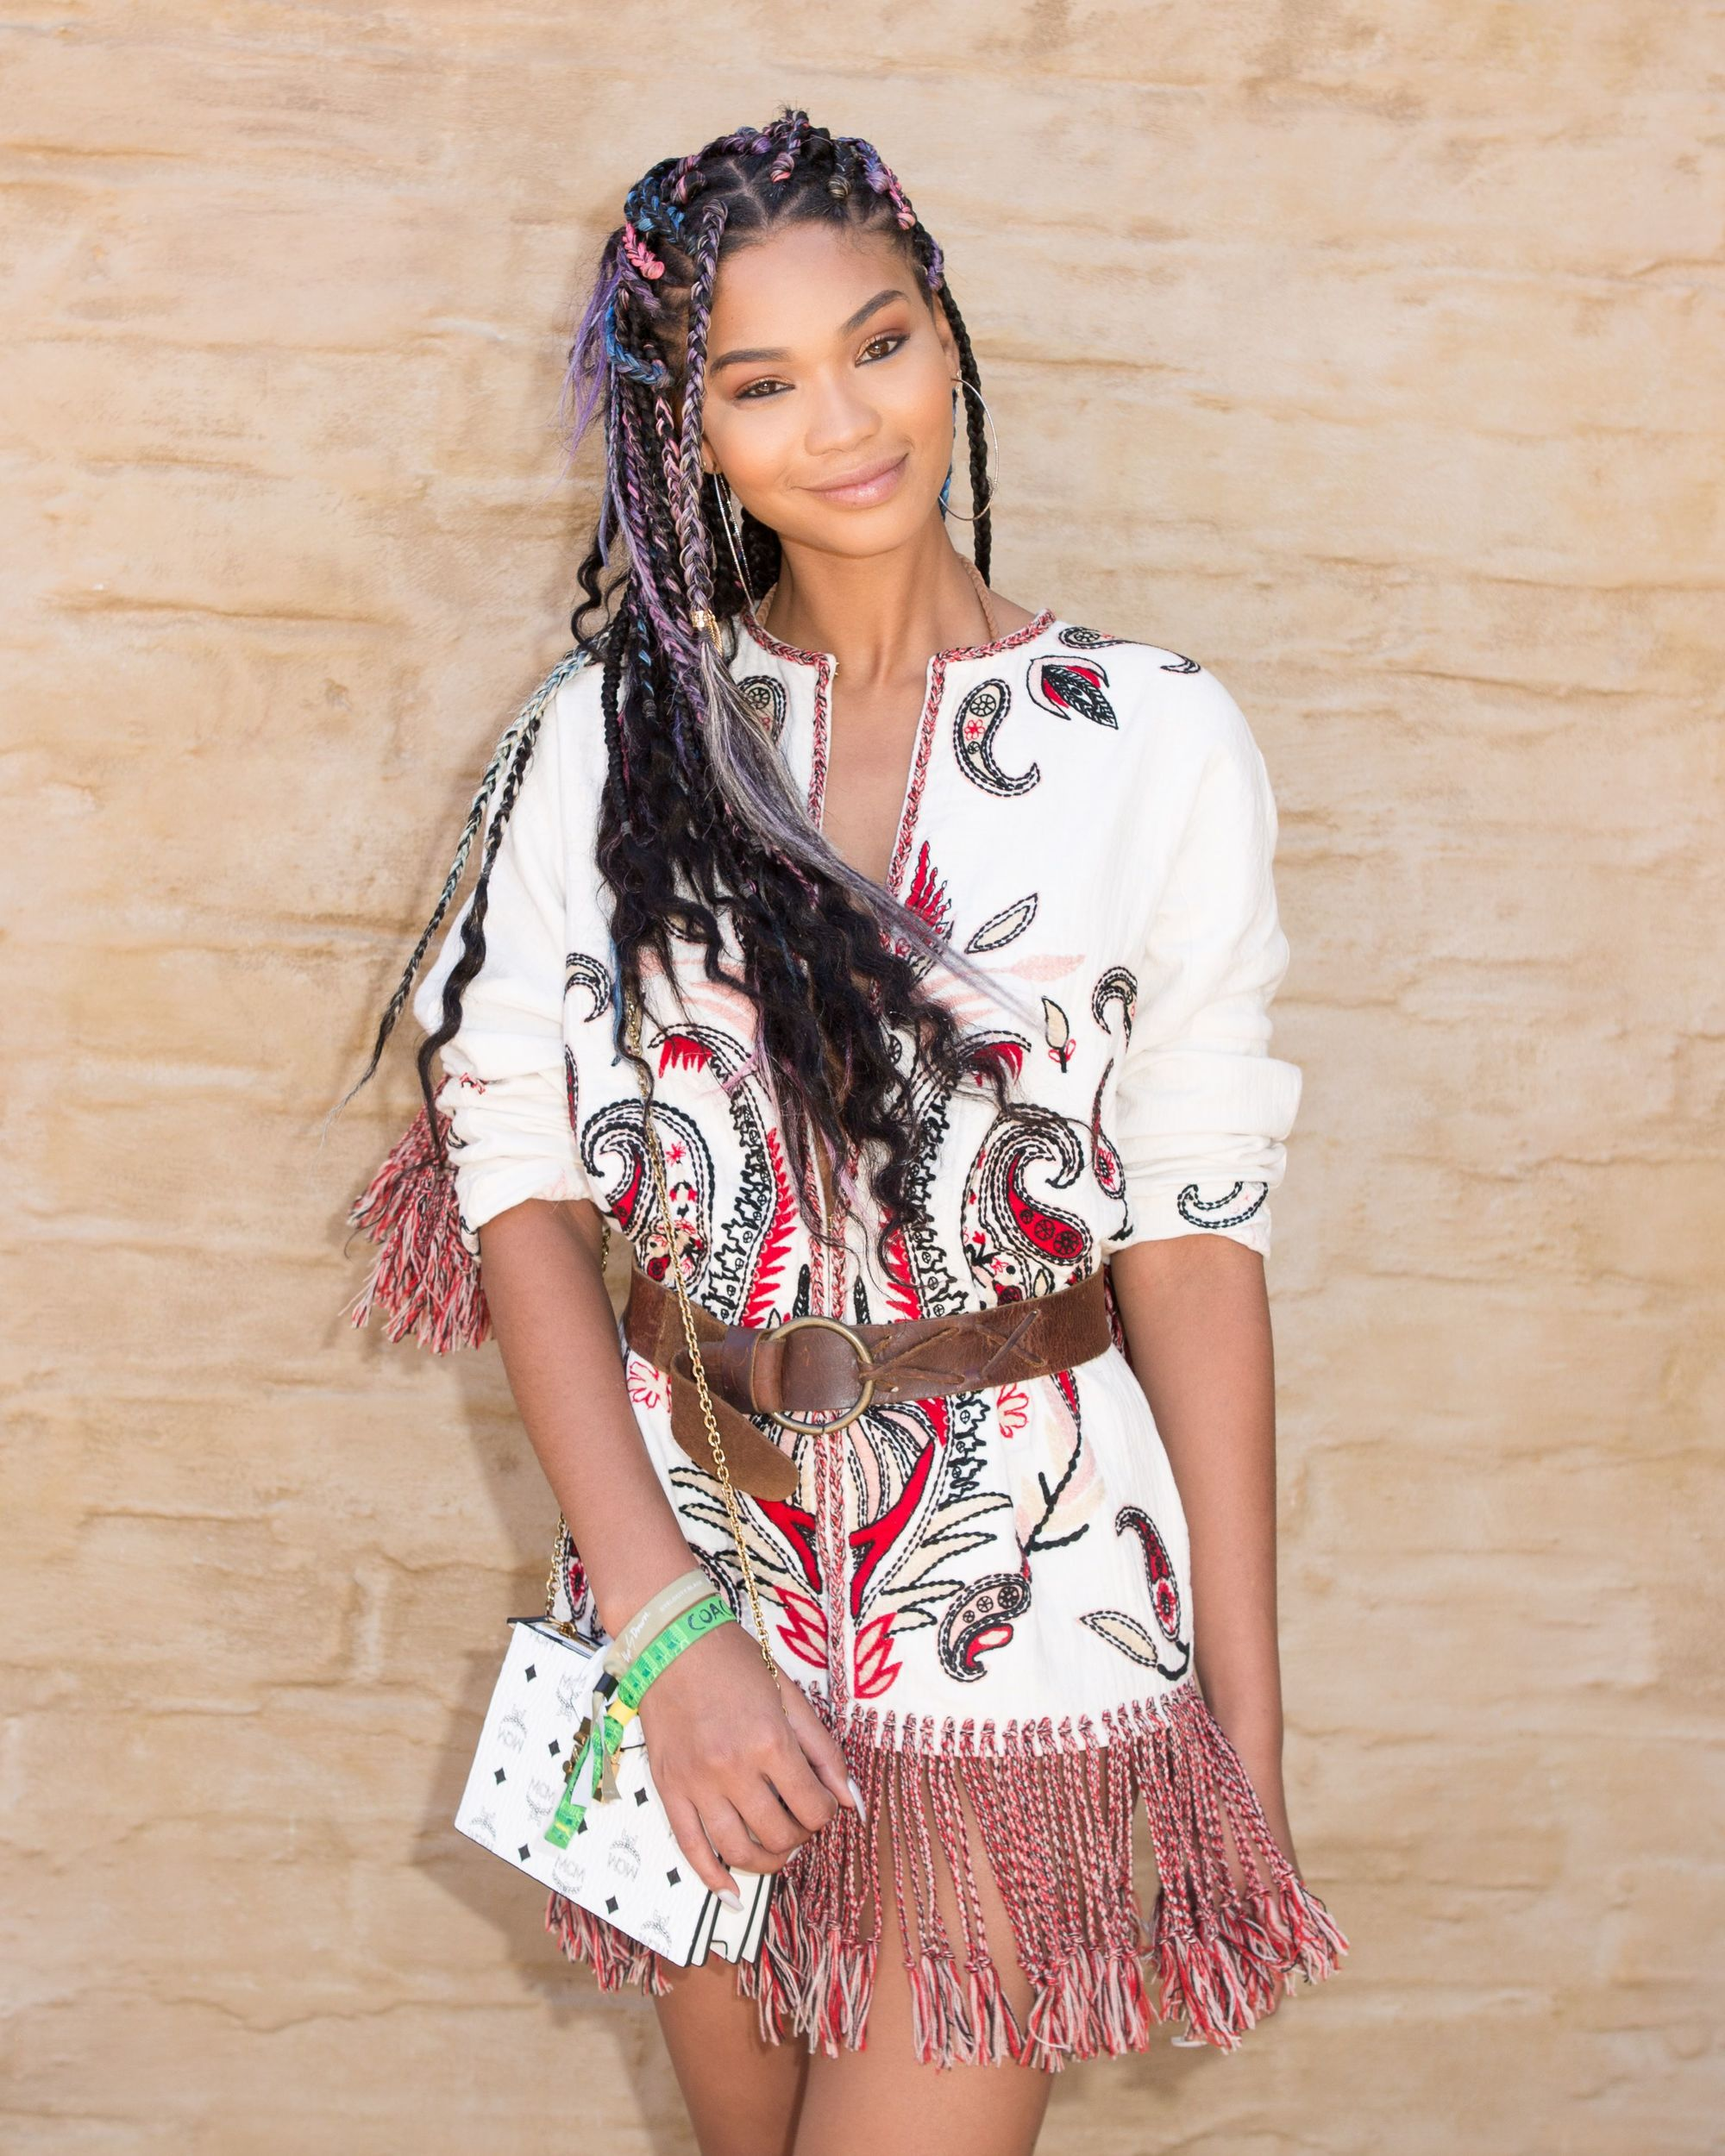 Chanel Iman with loose box braids hairstyle at coachella, wearing boho outfit